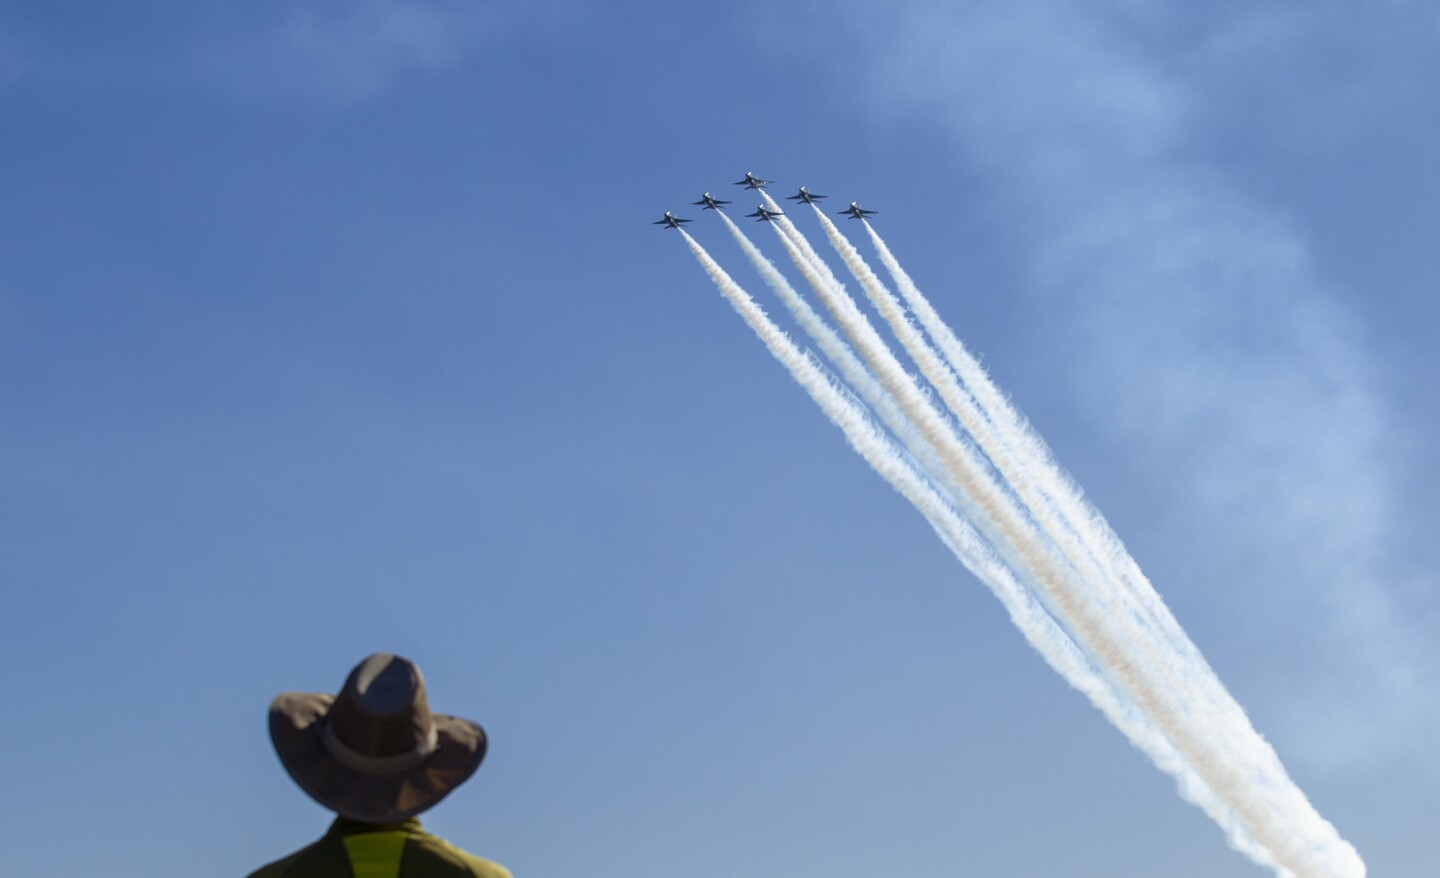 Photo Gallery: The Great Pacific Airshow